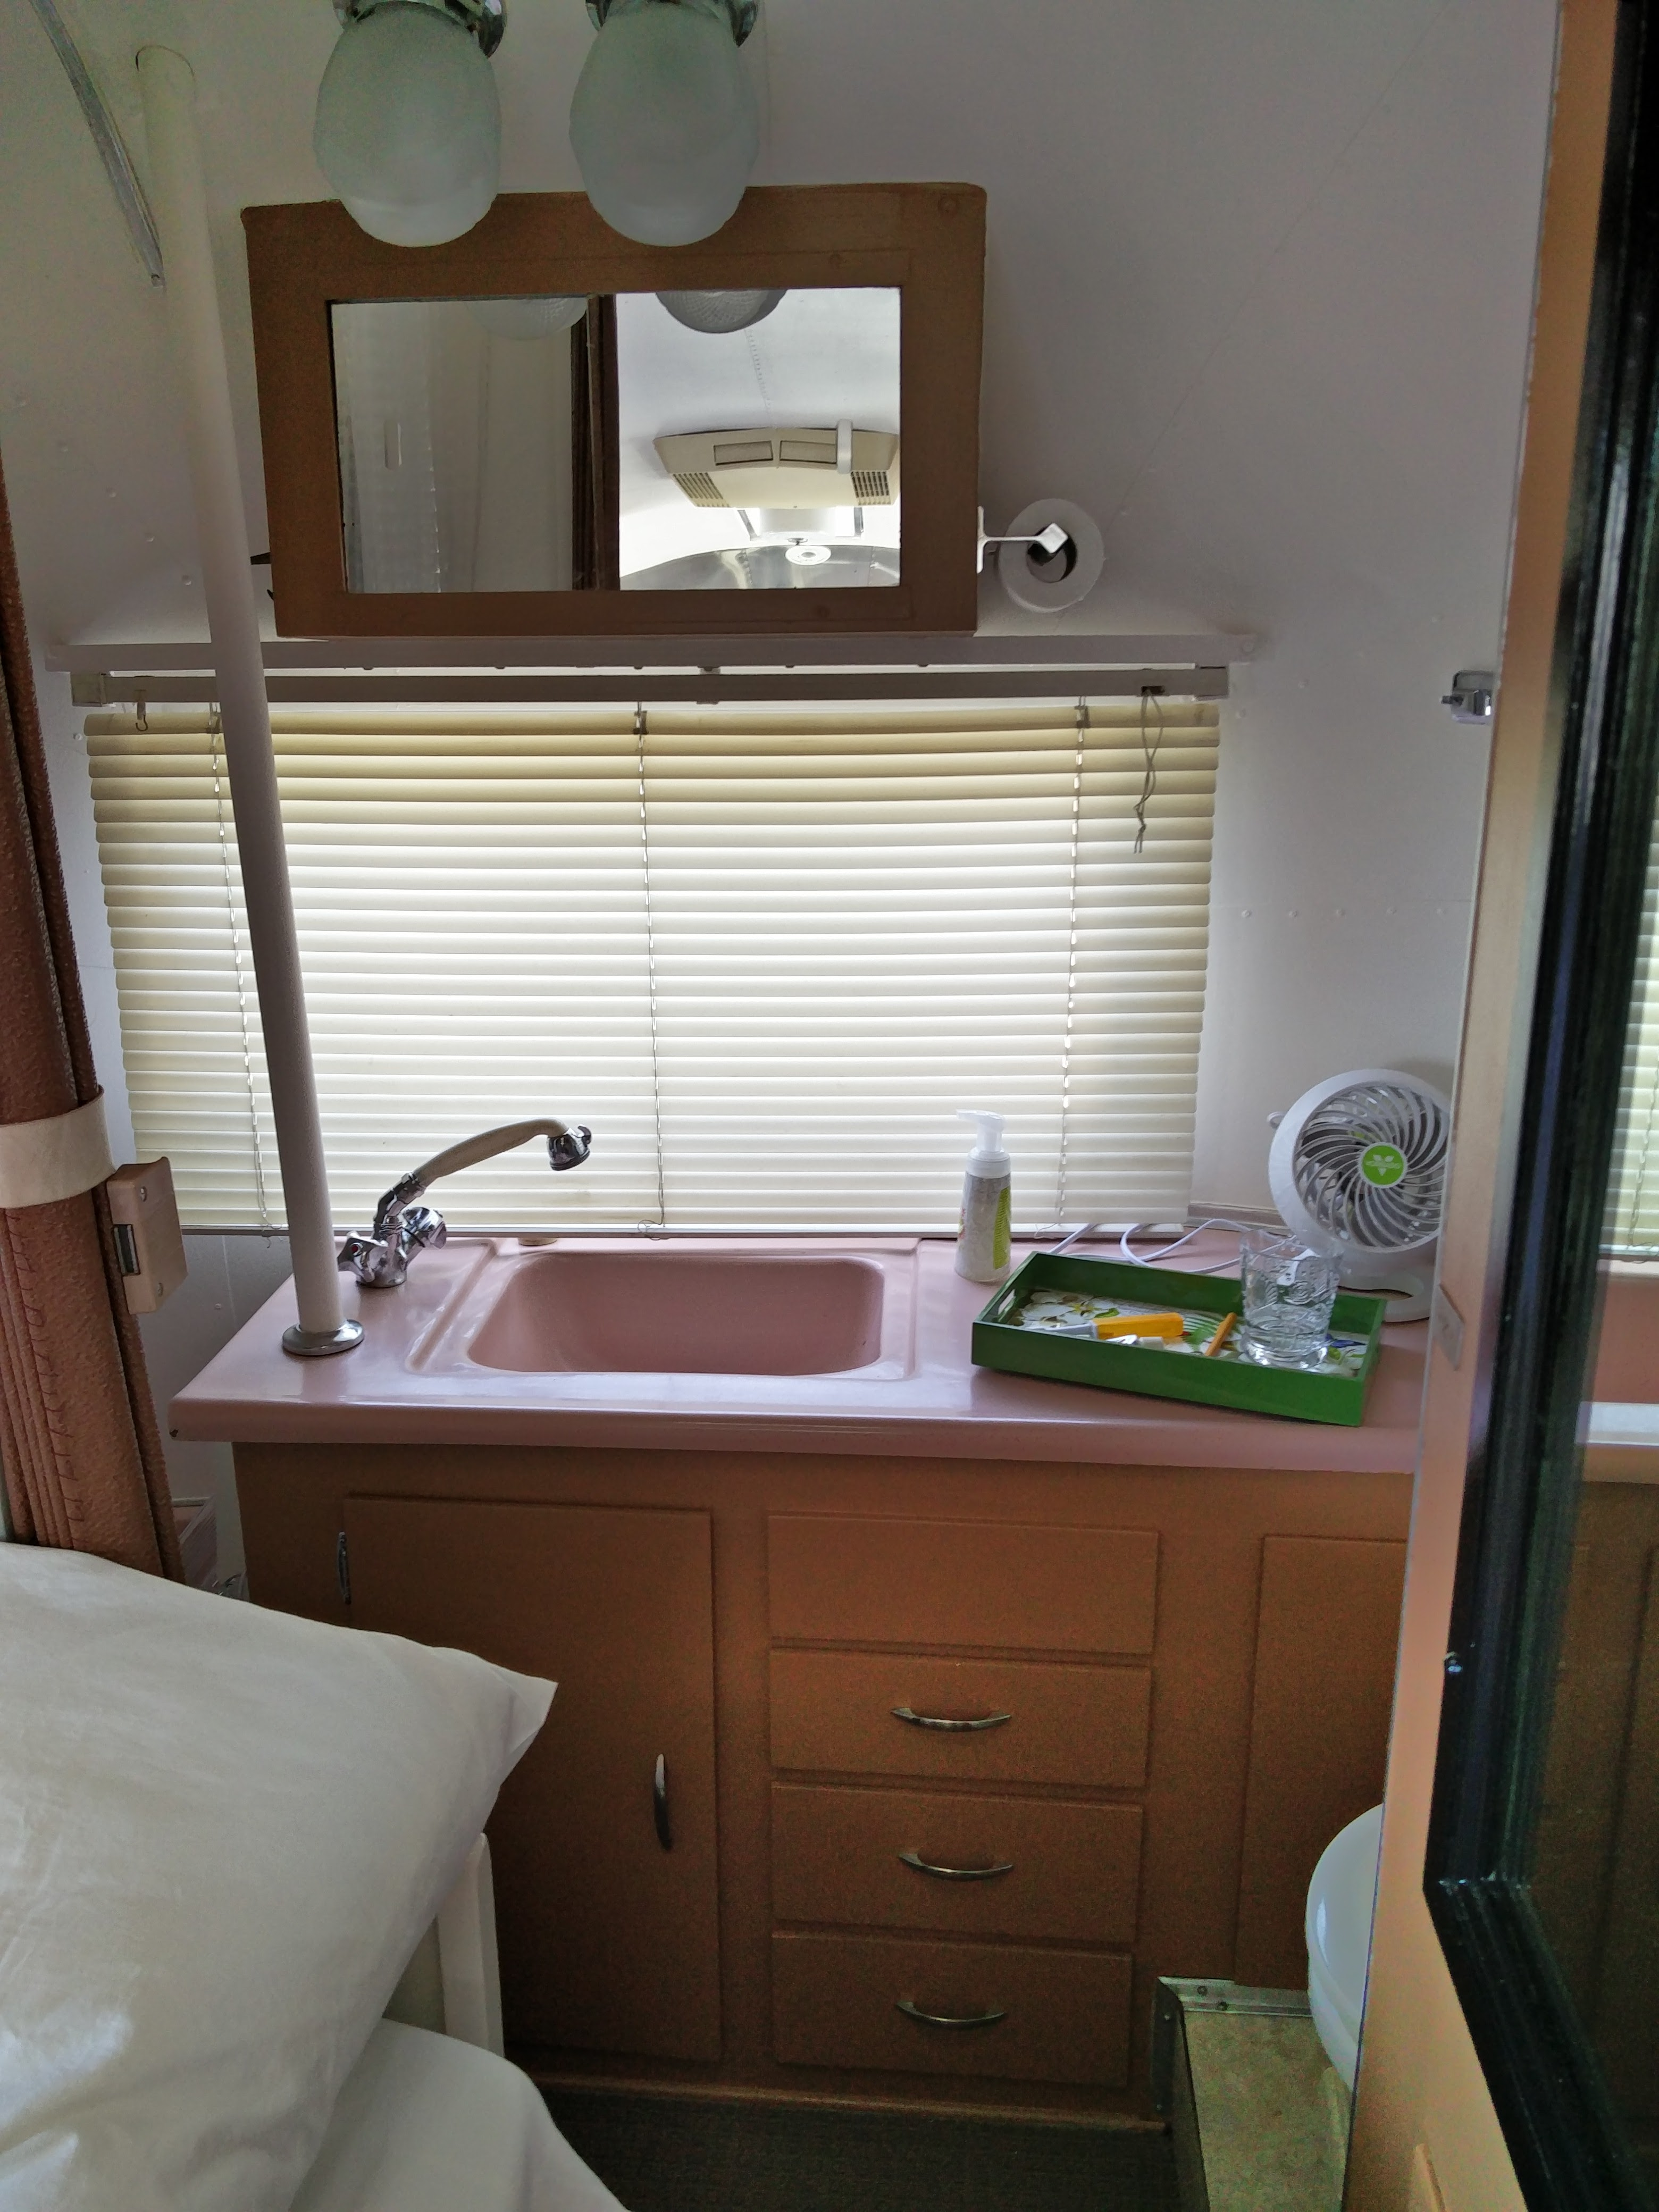 Full working Airstream bathroom